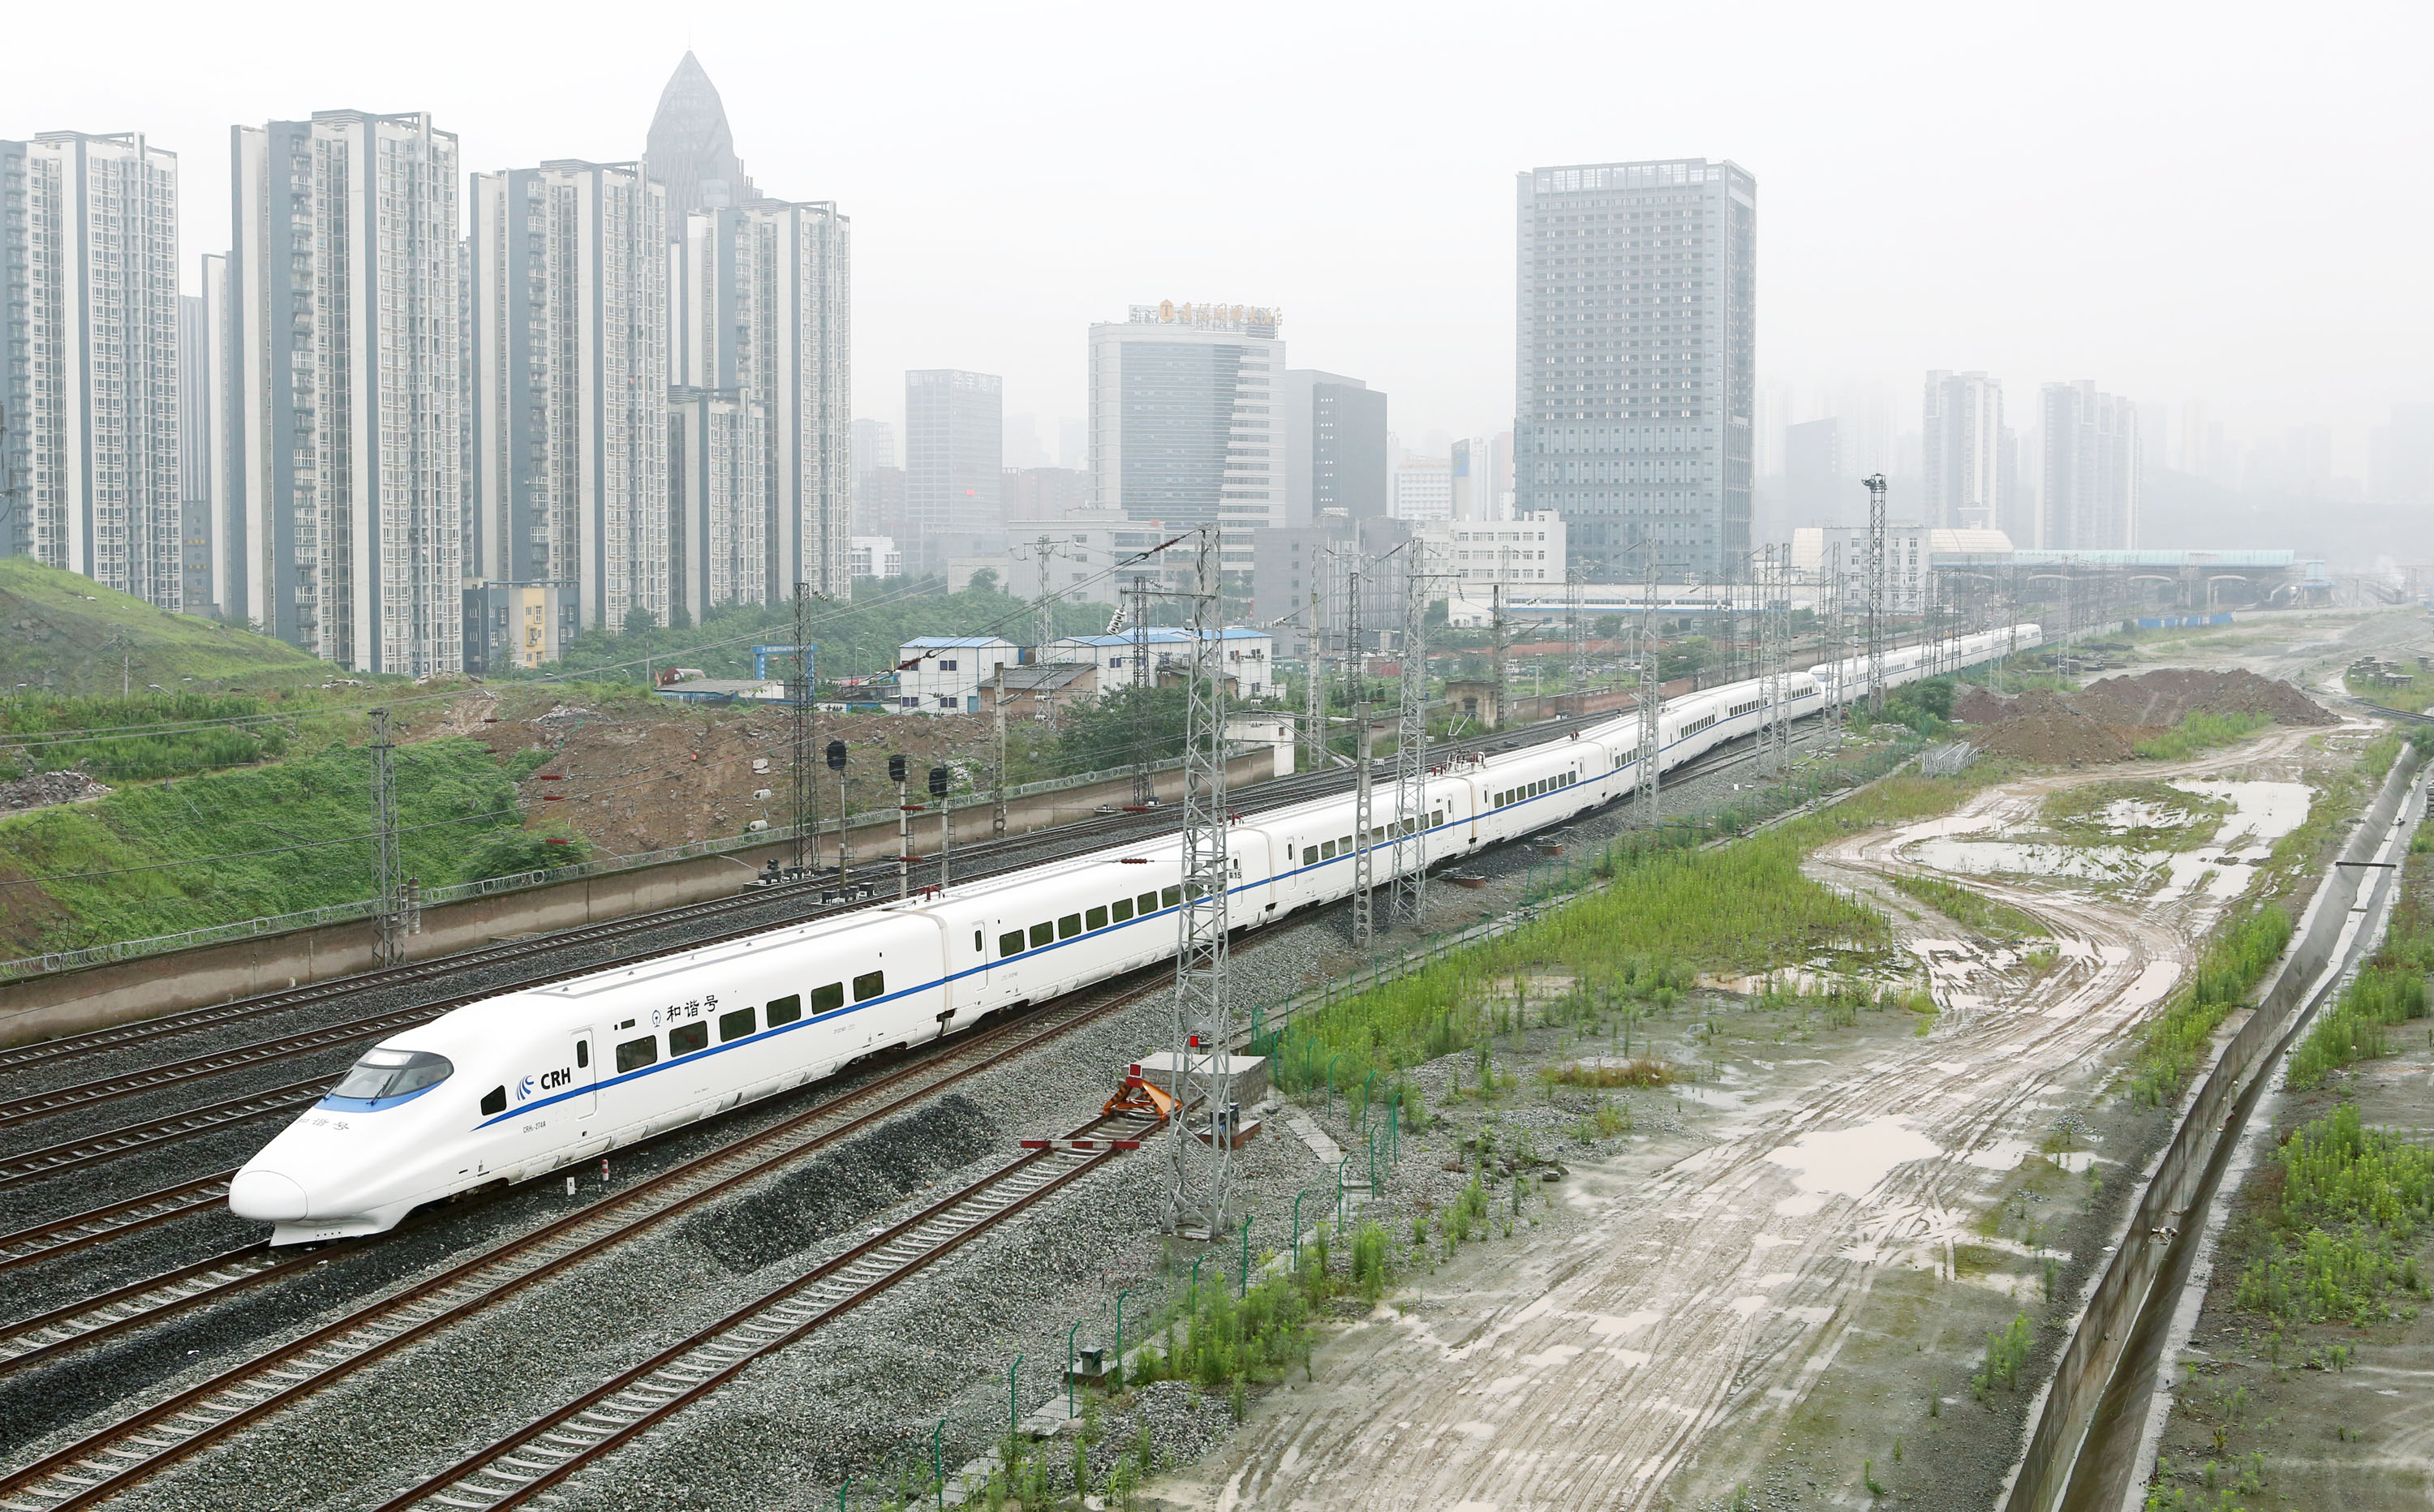 China To Form High-speed Railway Network By 2015